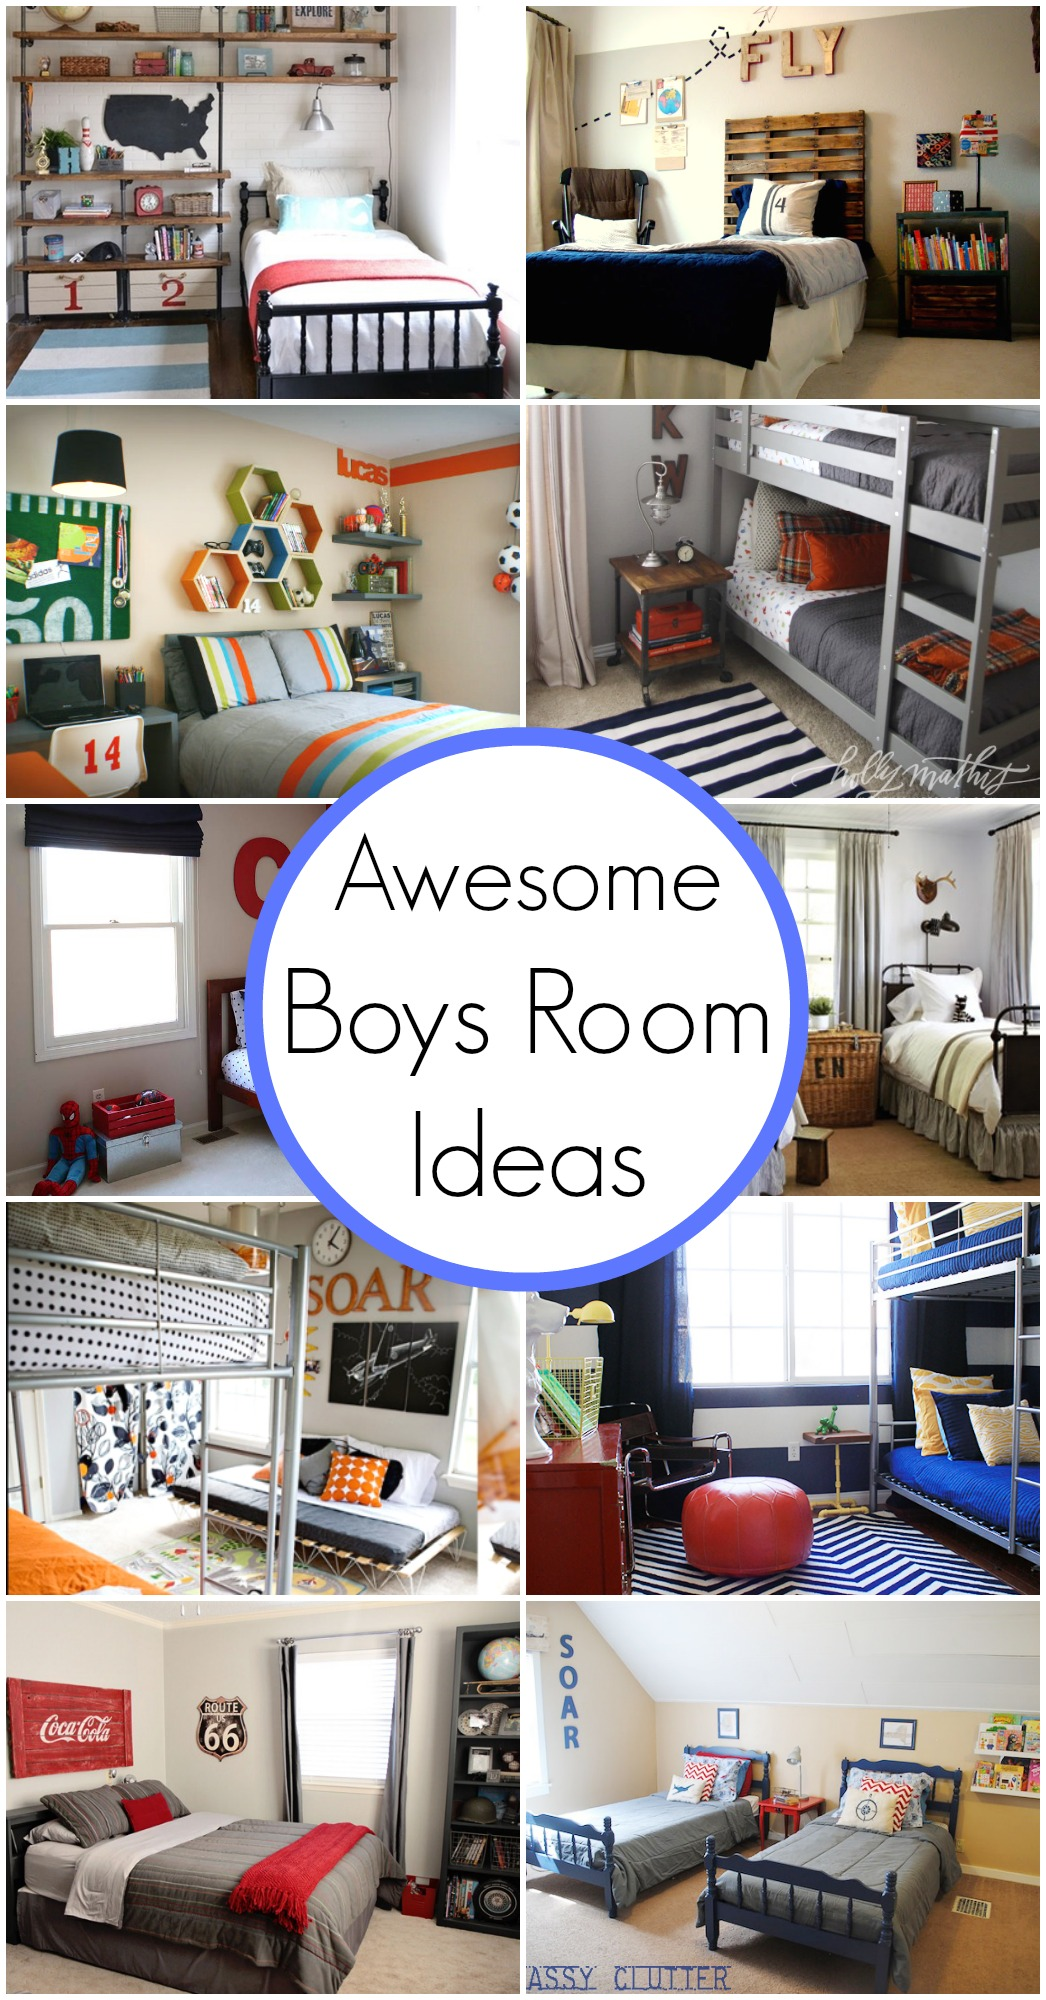 10 awesome boy s bedroom ideas classy clutter 30 awesome teenage boy bedroom ideas designbump